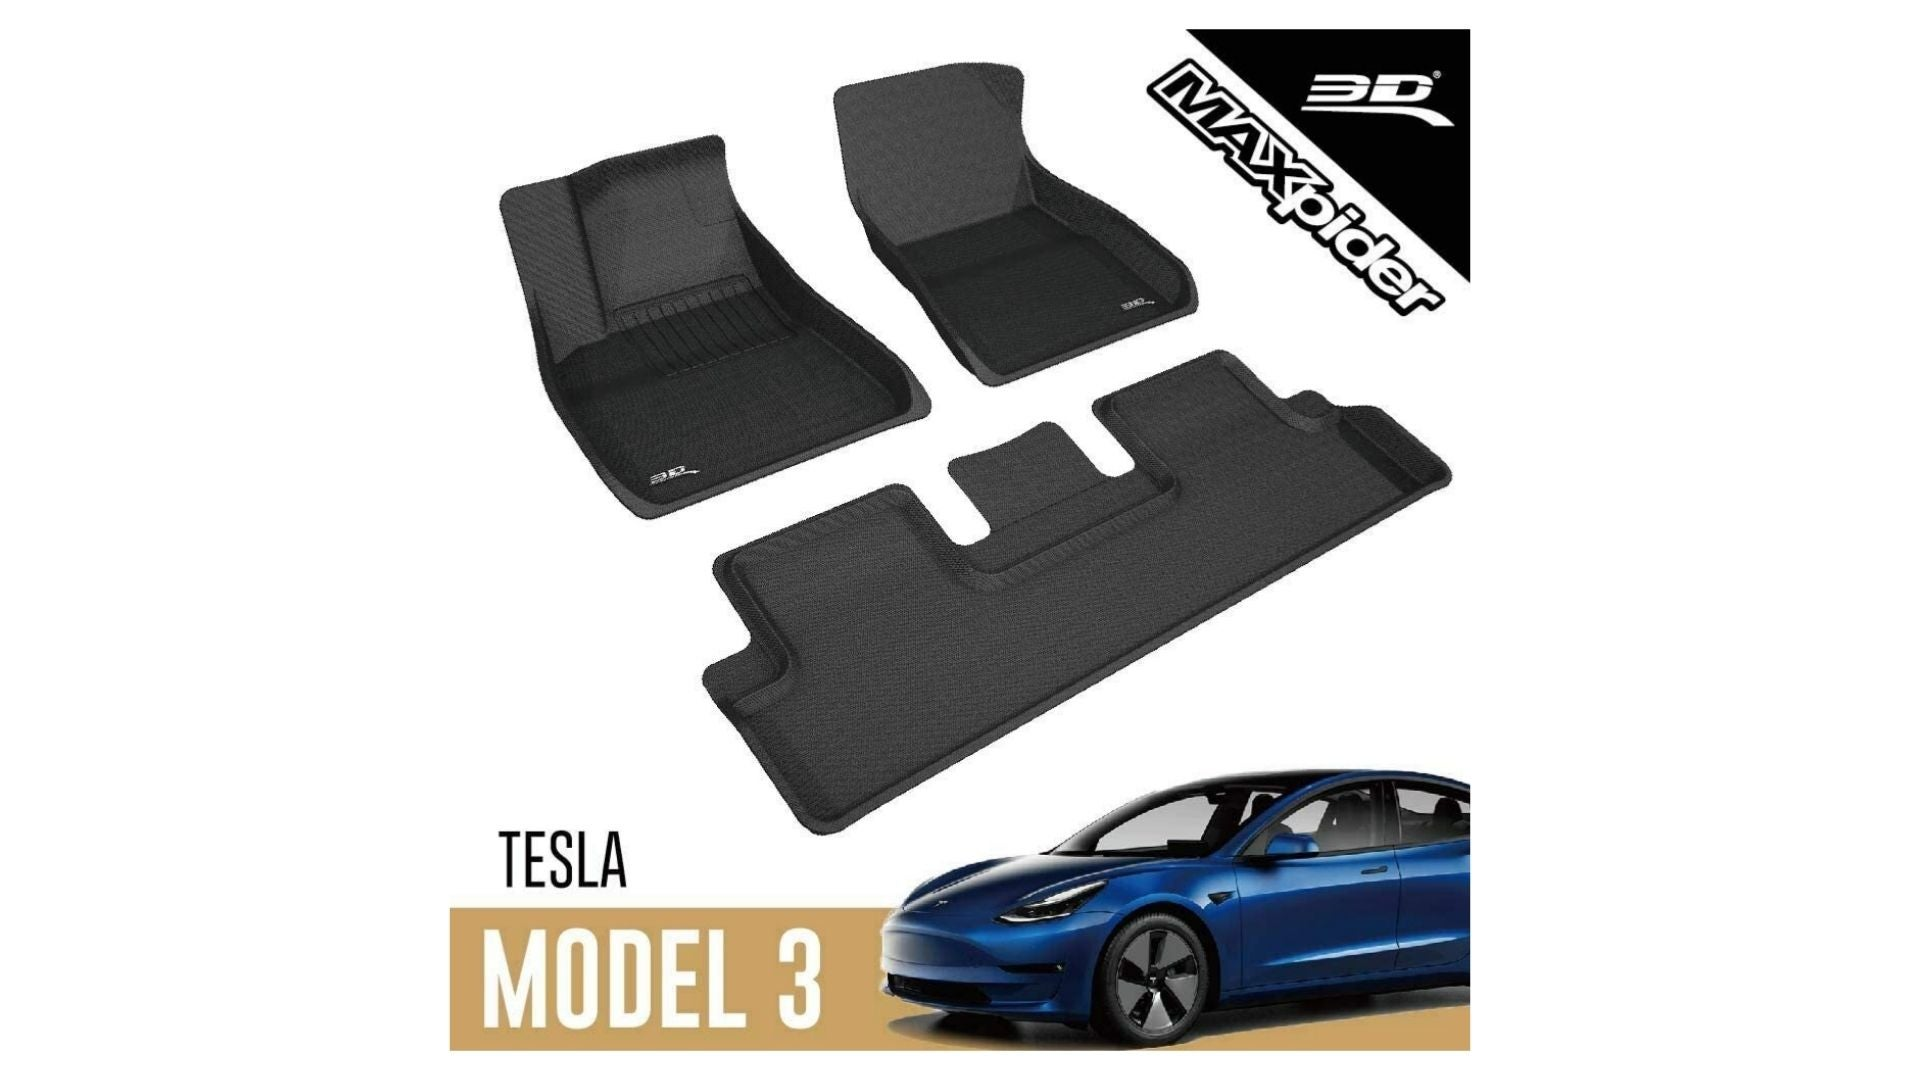 3D MAXpider Kagu Series All-Weather Model 3 Floor Mats (Front and Rear)